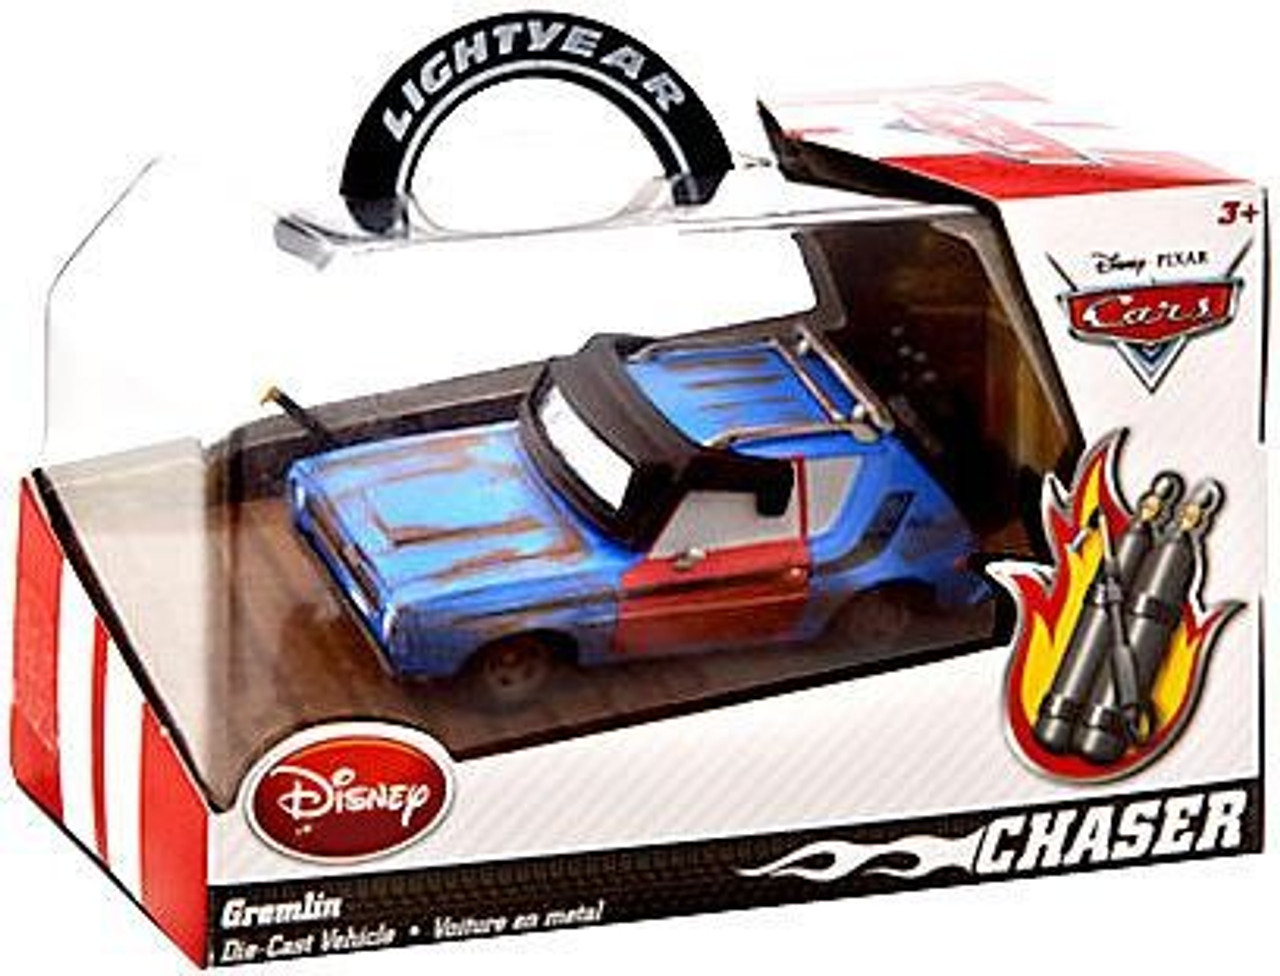 Disney Cars Gremlin Exclusive Diecast Car [Chase Edition]